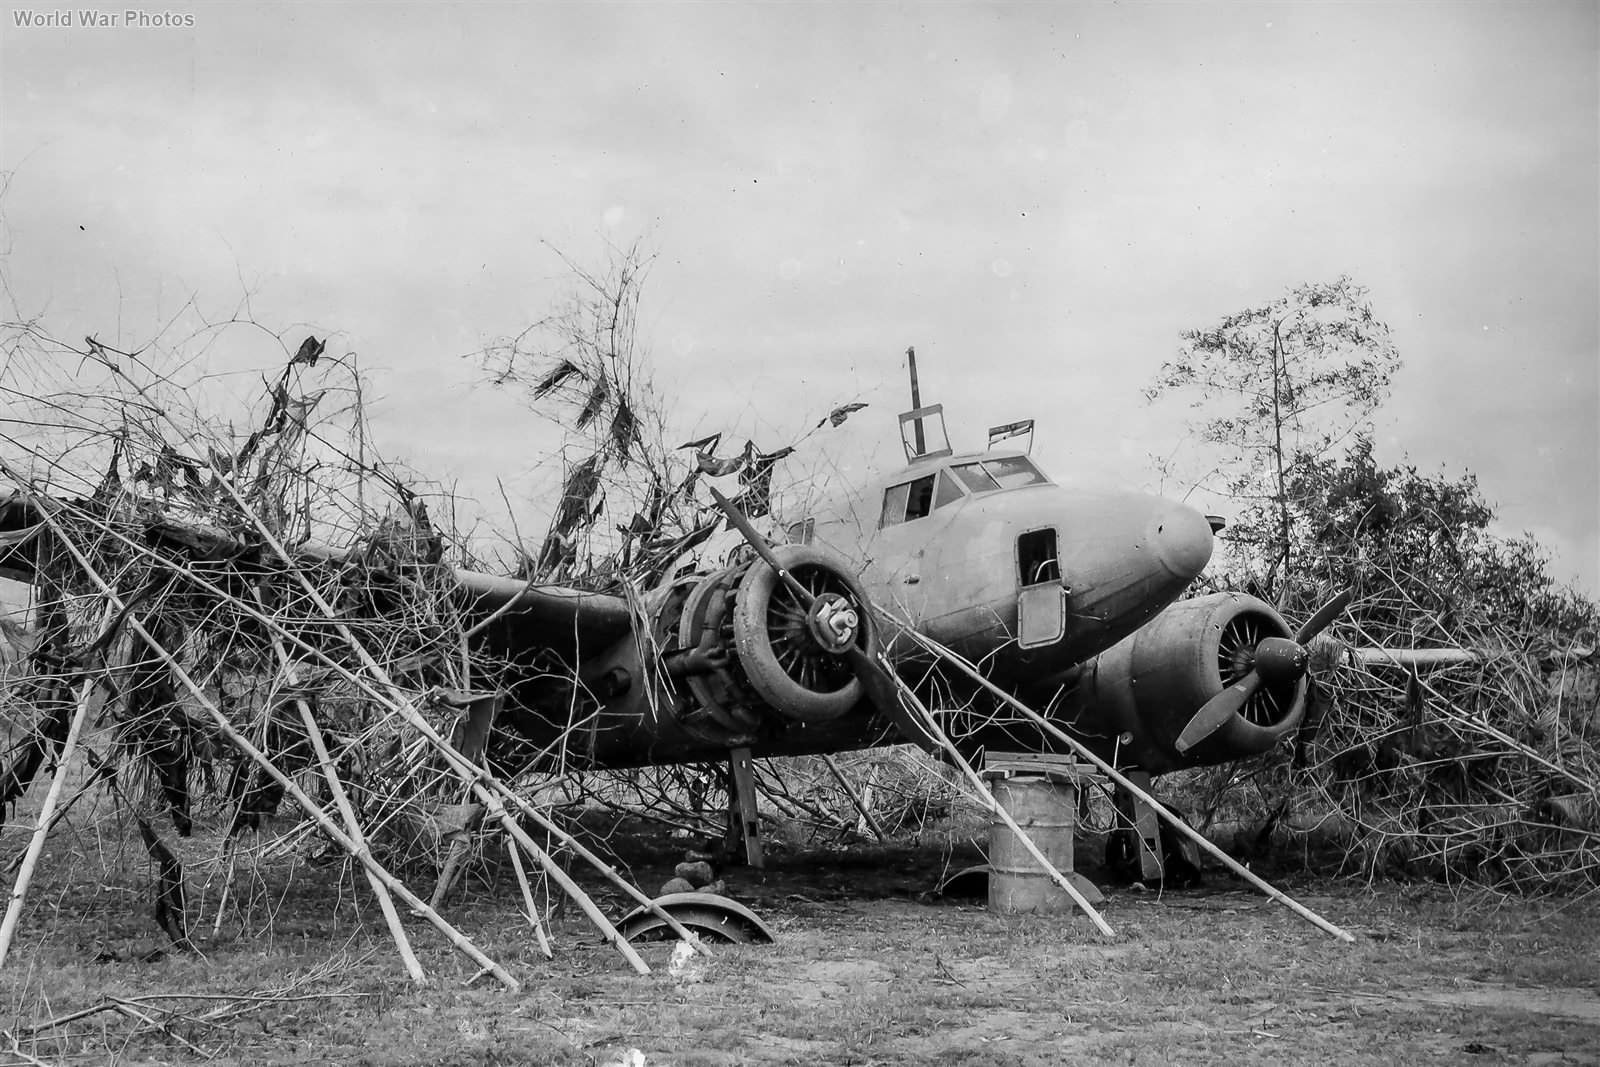 Ki-54 Transport in Philippines 1945